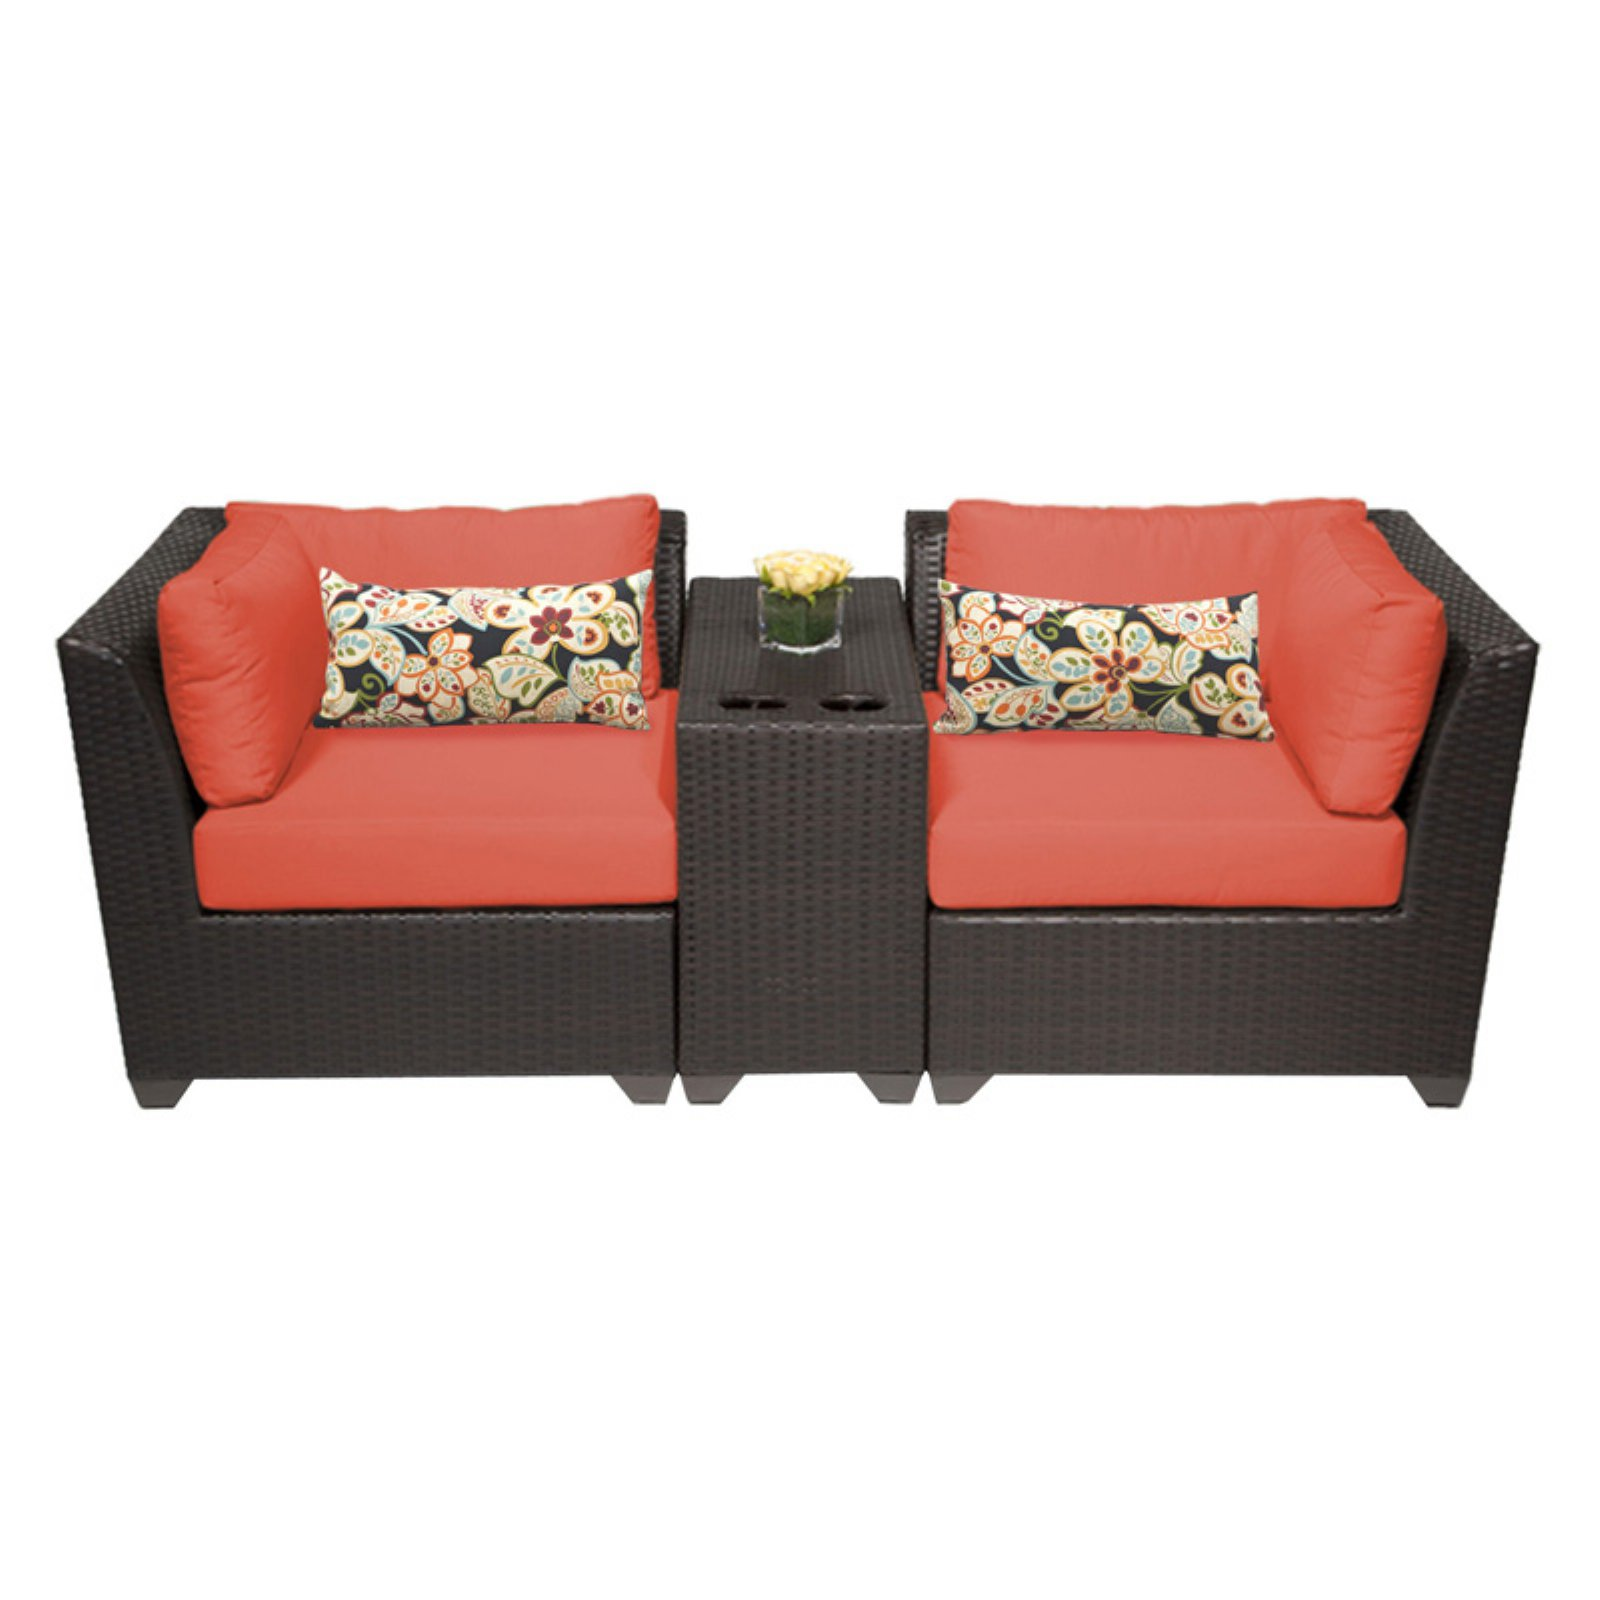 TK Classics Barbados Wicker 3 Piece Patio Conversation Set with Cup Table and 2 Sets of Cushion Covers